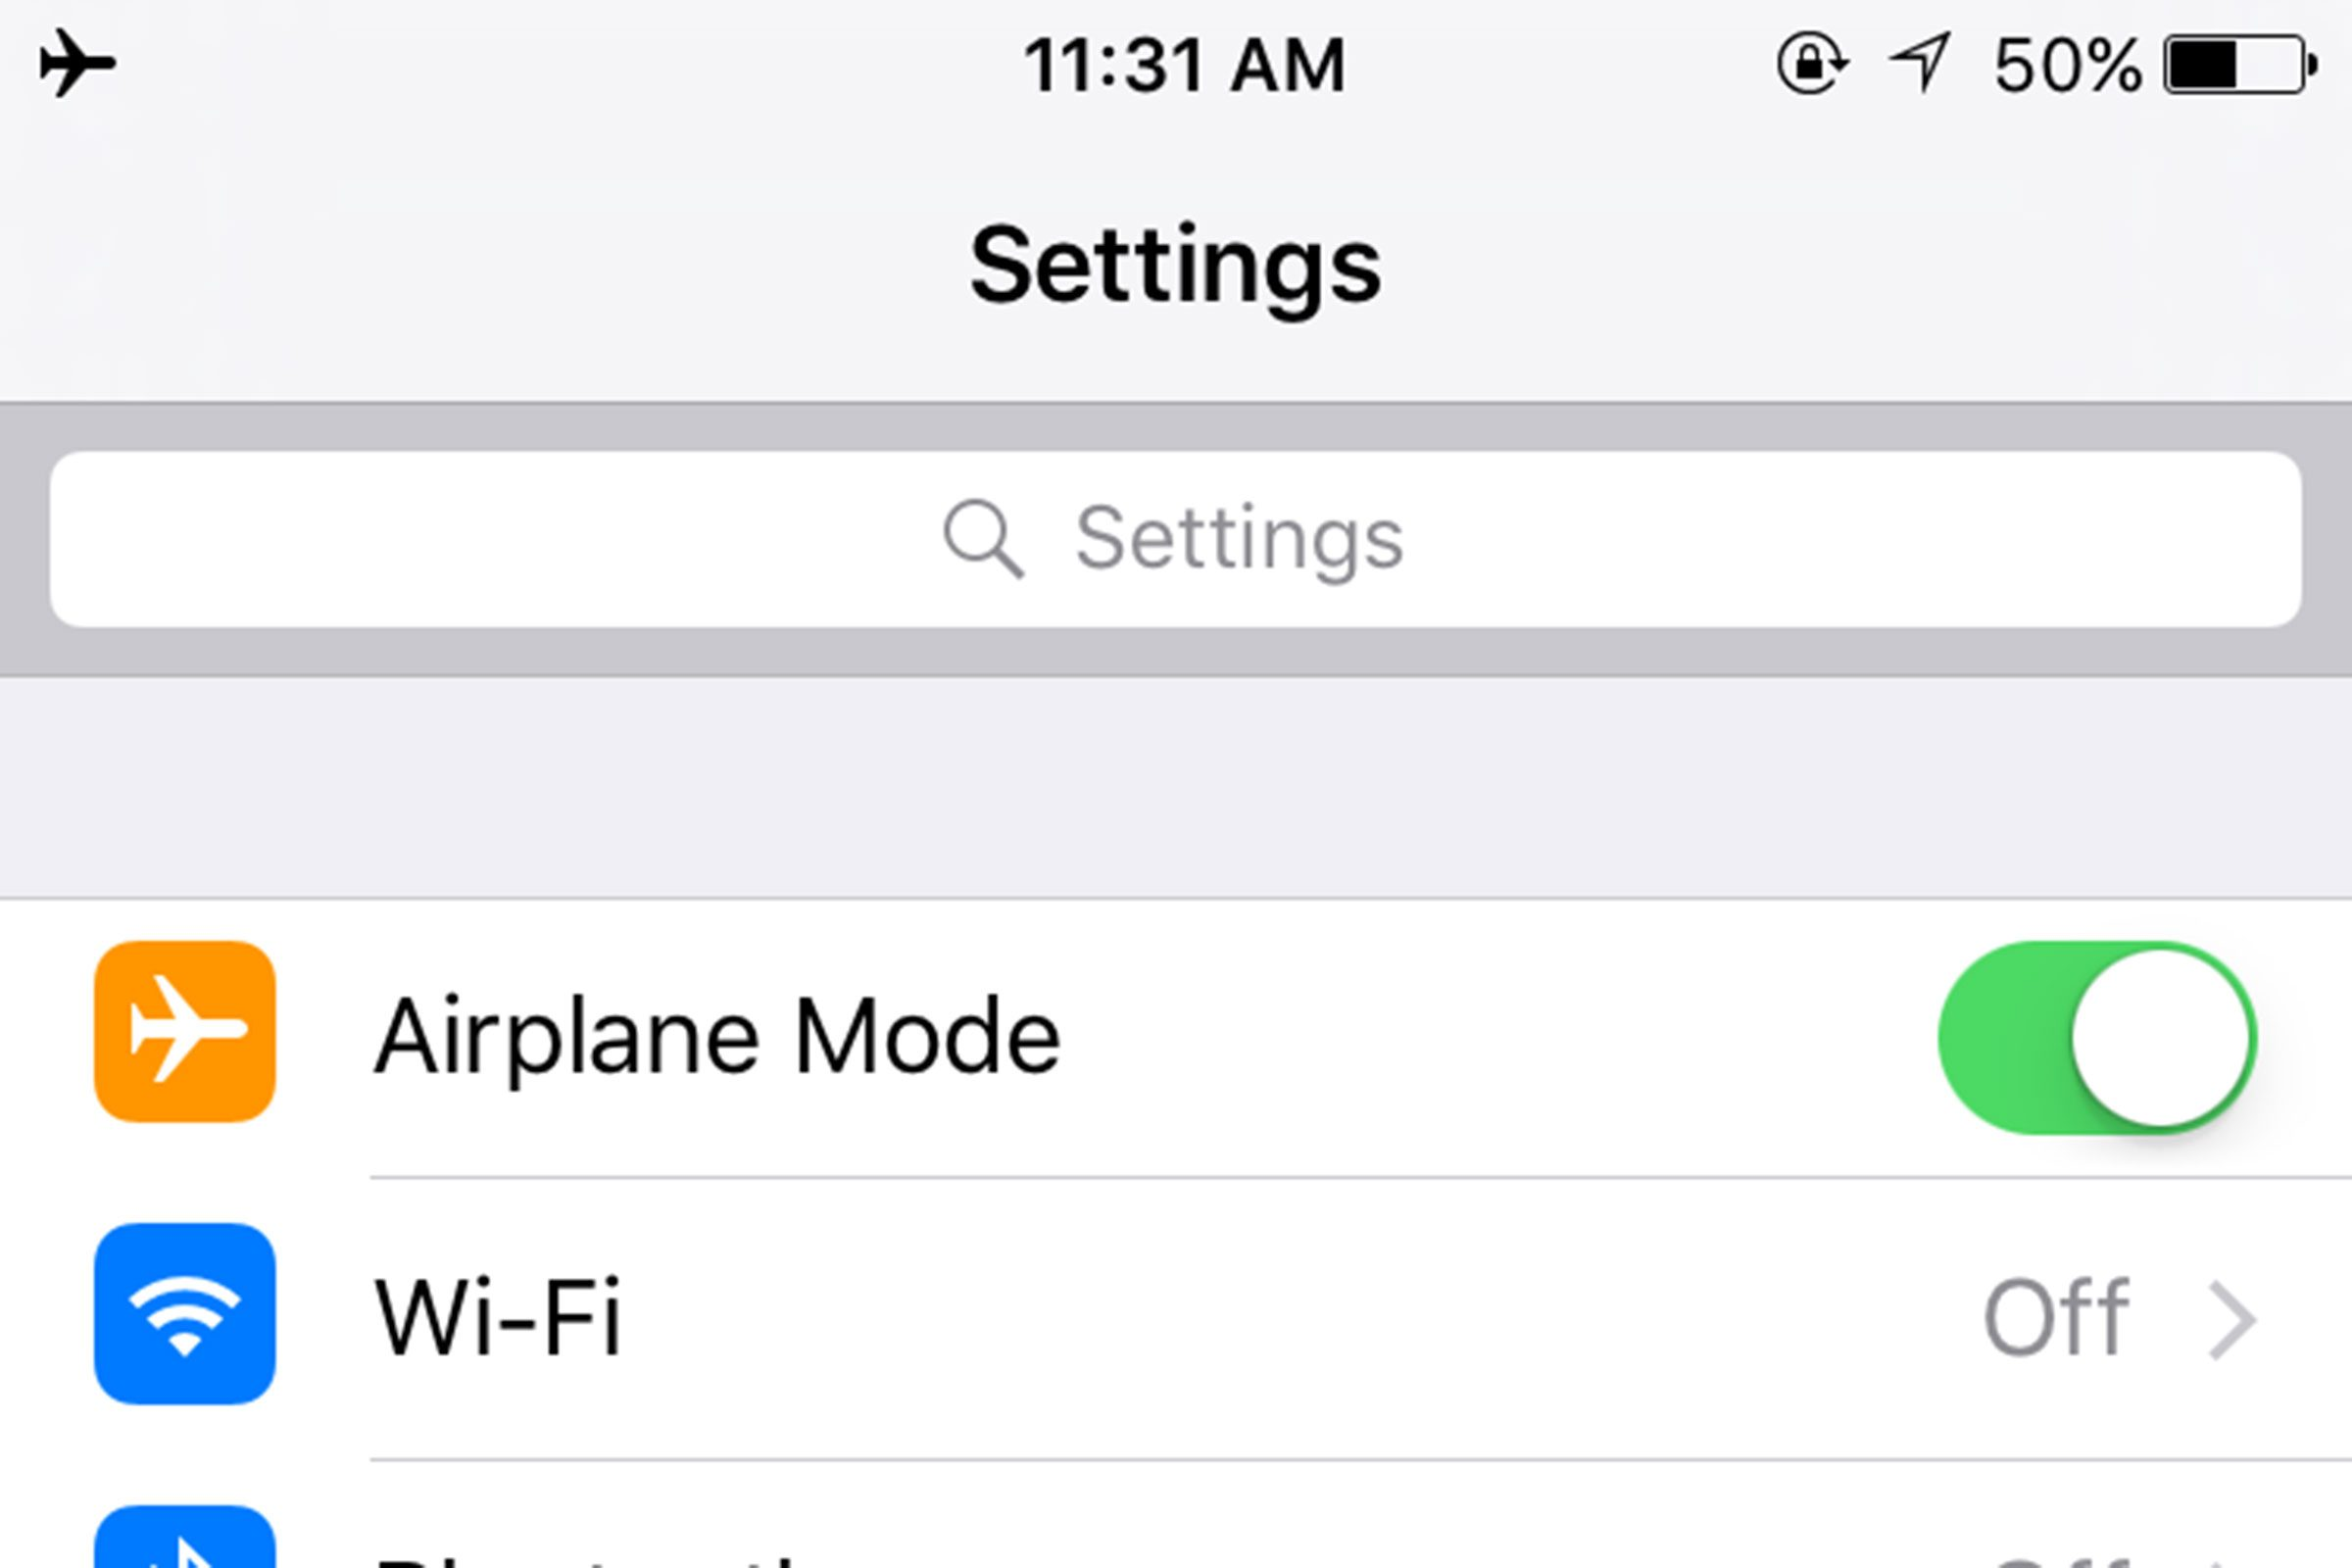 Use 'Airplane Mode'